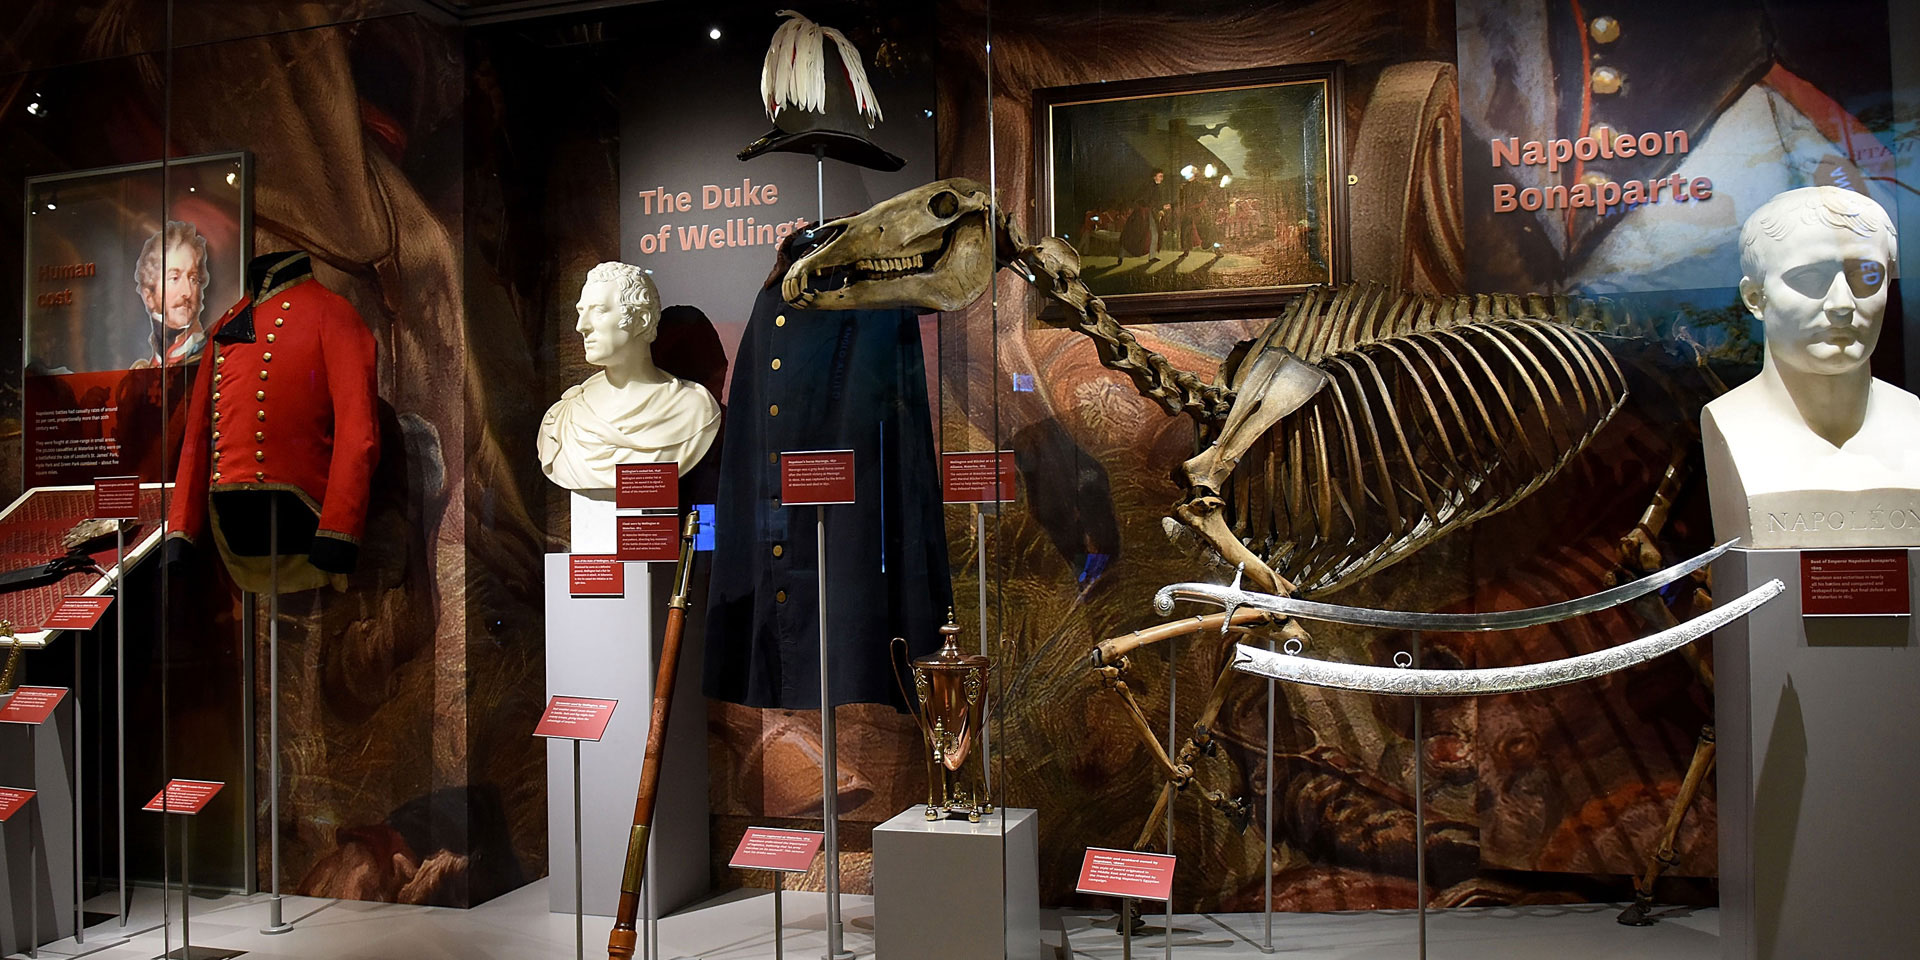 Objects relating to the Duke of Wellington and Napoleon on display in Battle gallery